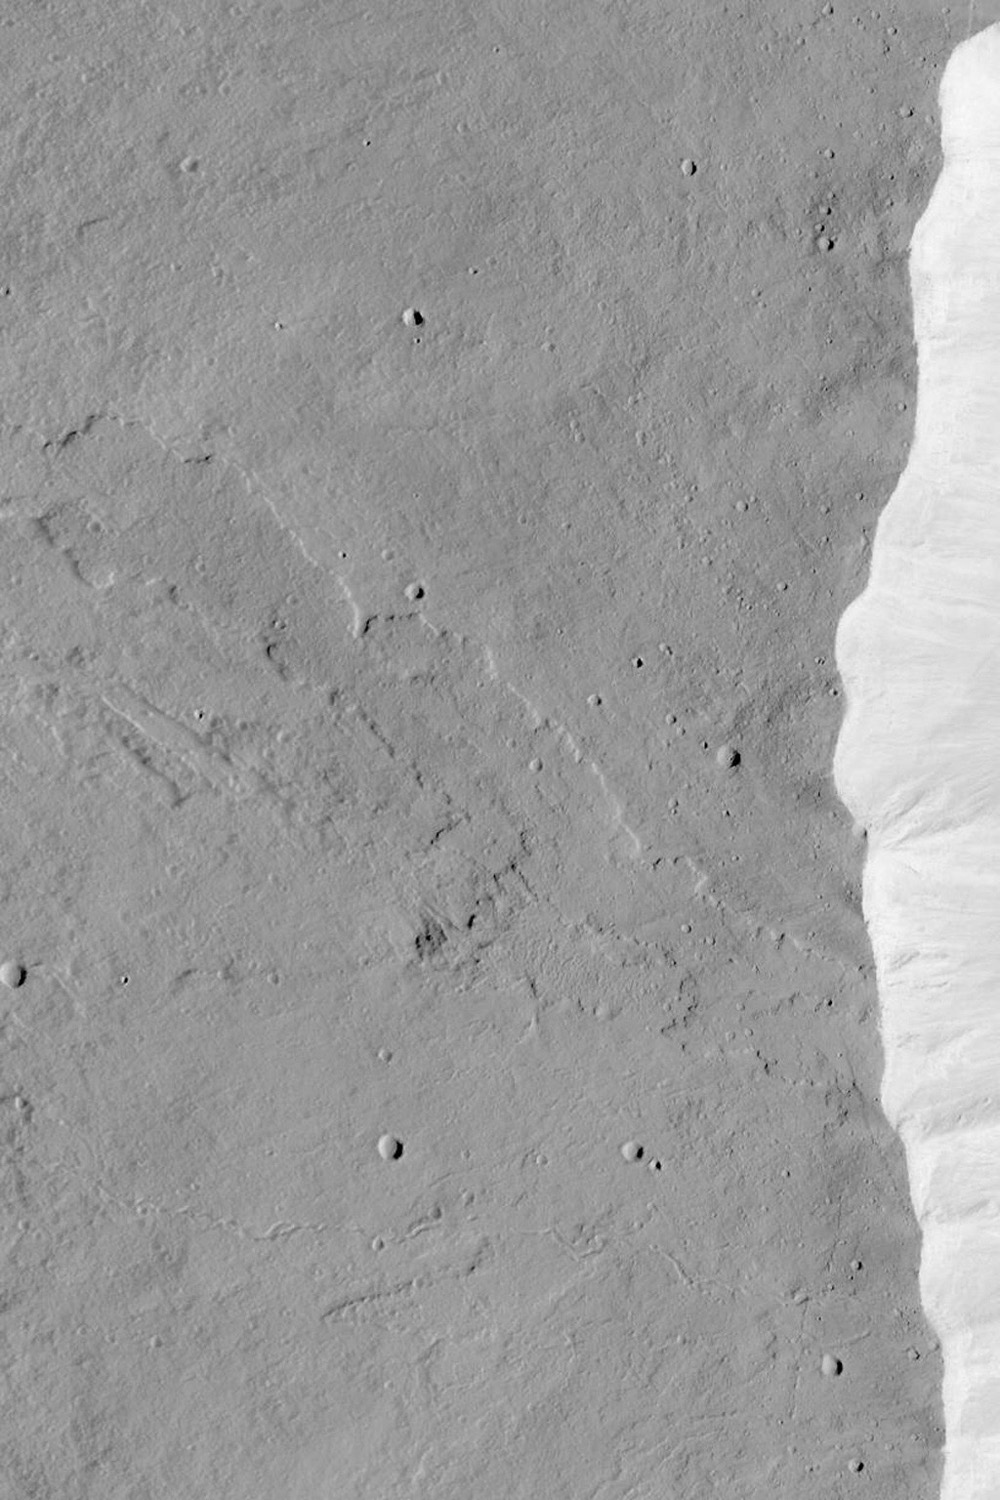 NASA's Mars Global Surveyor shows the western summit region of Olympus Mons on Mars featuring a lava flow that was cut by the pit walls when the caldera collapse occurred.